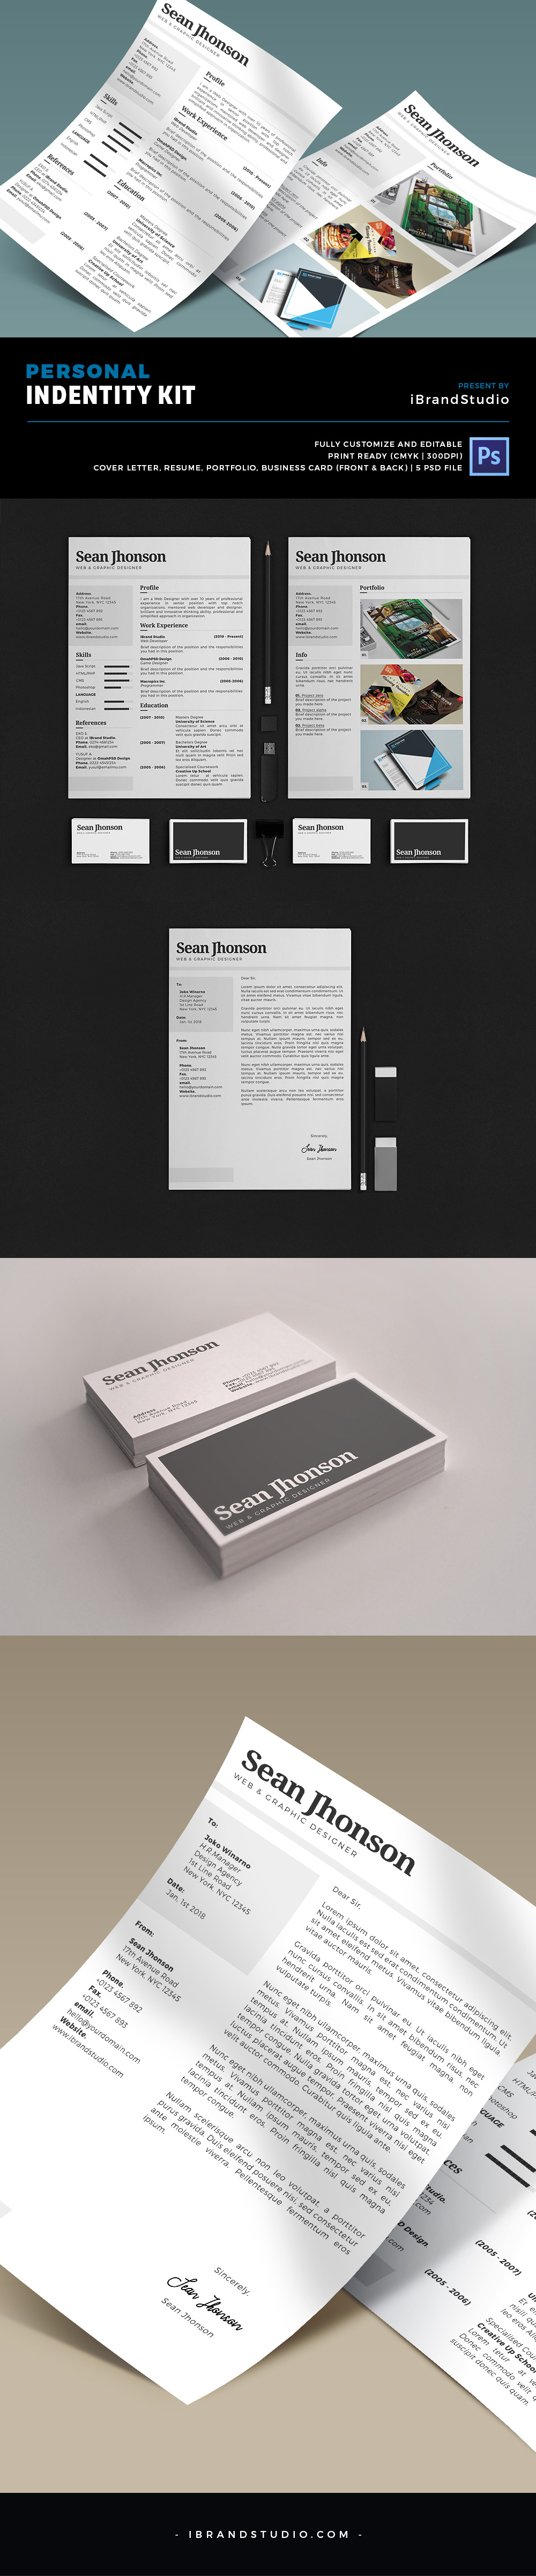 Free Personal Identity Kit PSD Template